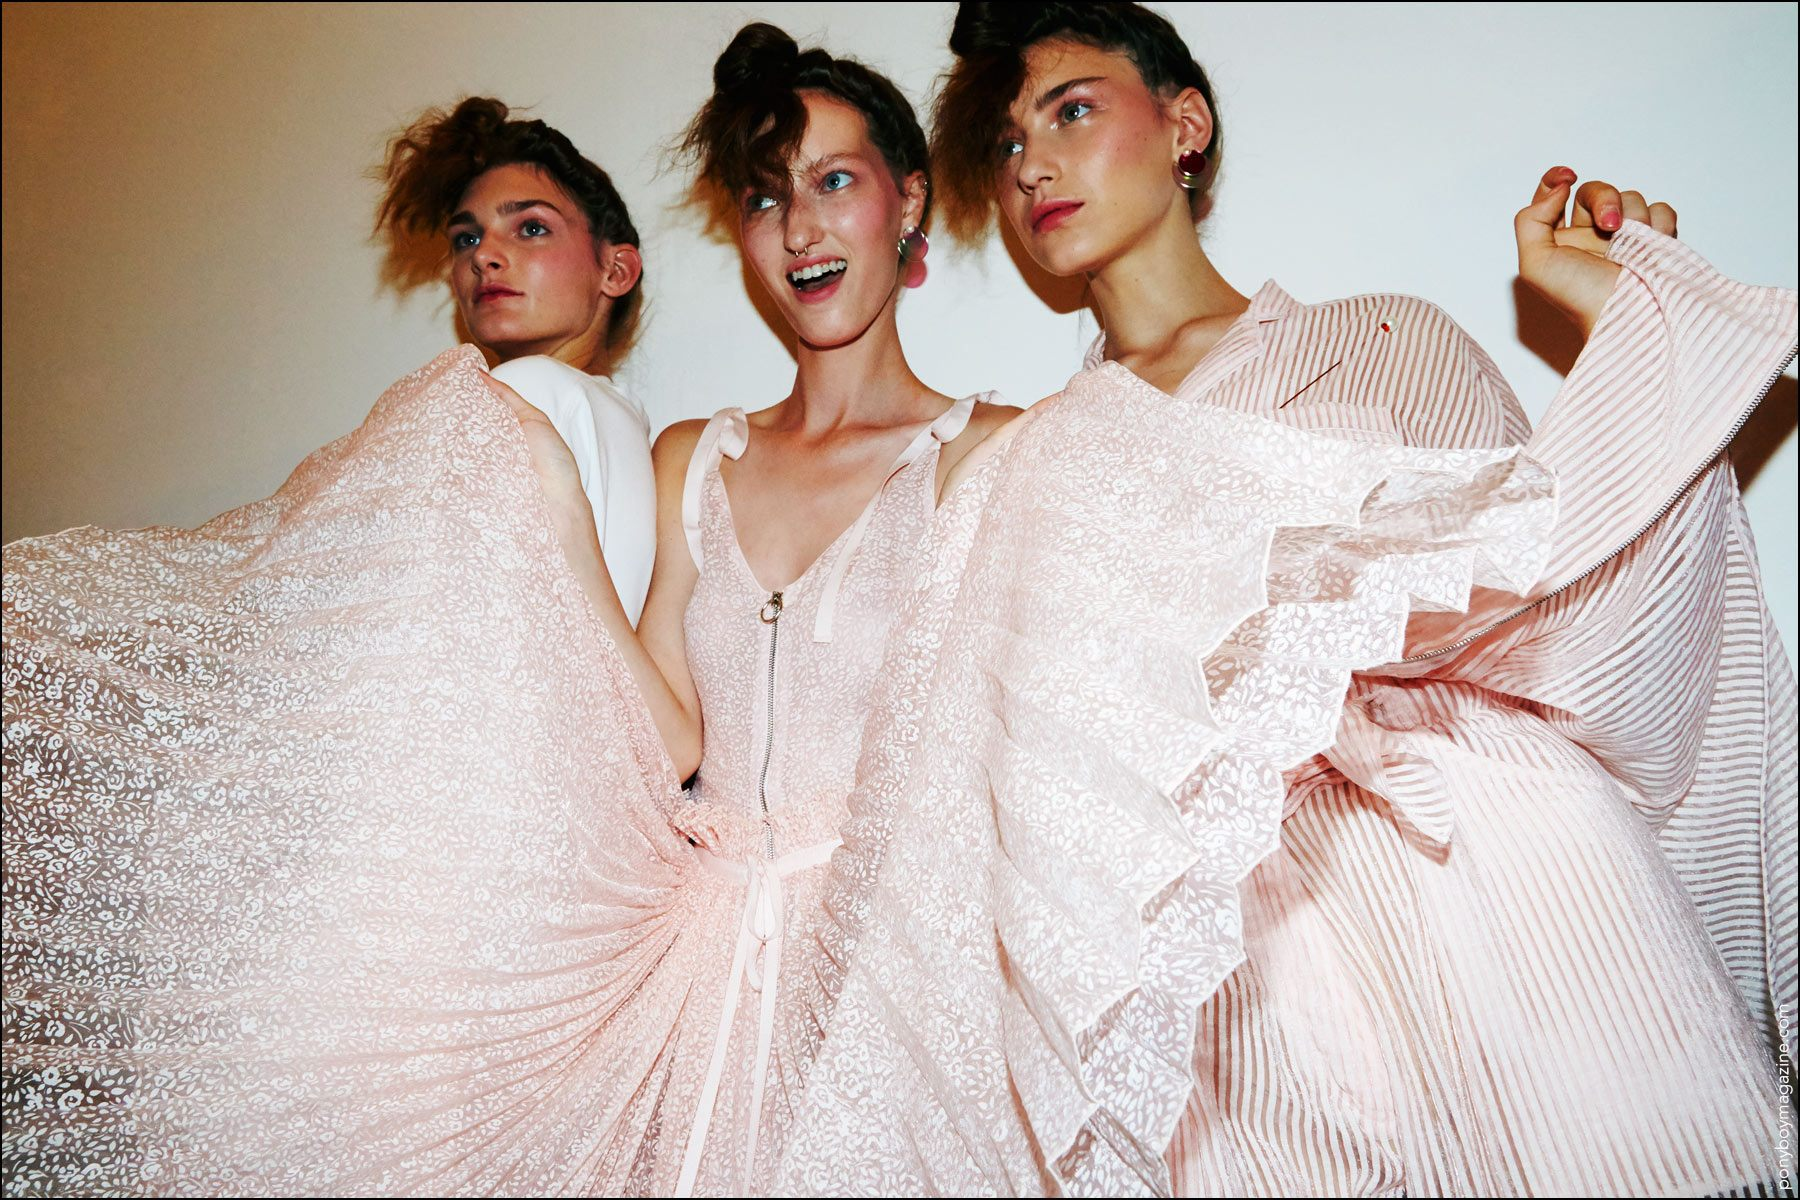 Models in pink designs by New York City downtown designer Adam Selman, for S/S17. Photography by Alexander Thompson for Ponyboy magazine